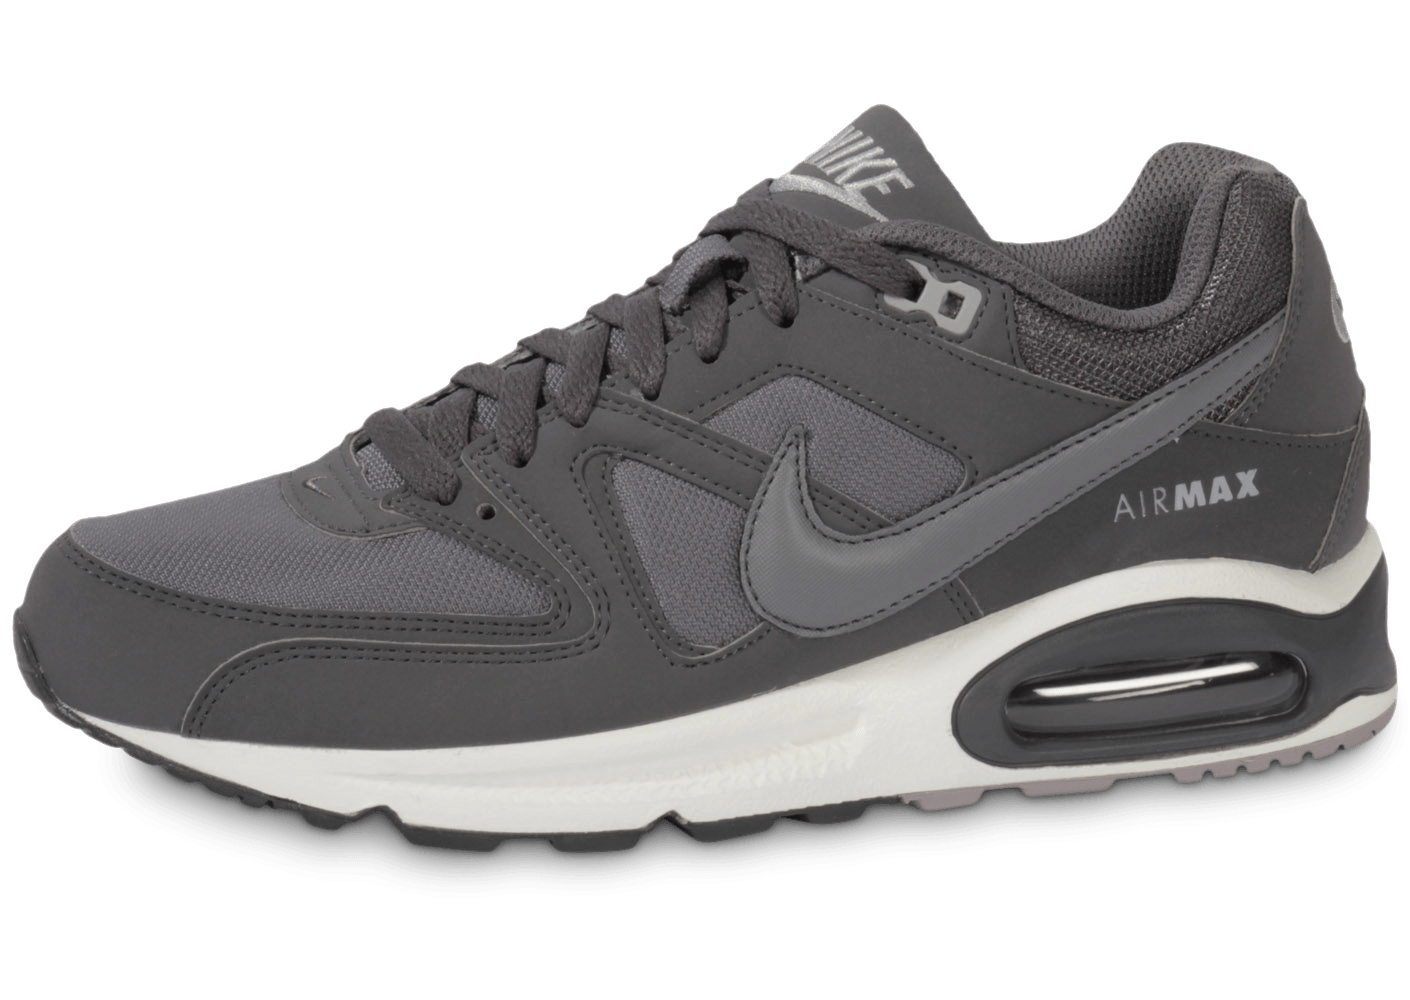 competitive price 1b929 c03d3 Chaussures Nike Air Max Command , basket Air Max Command - Chausport